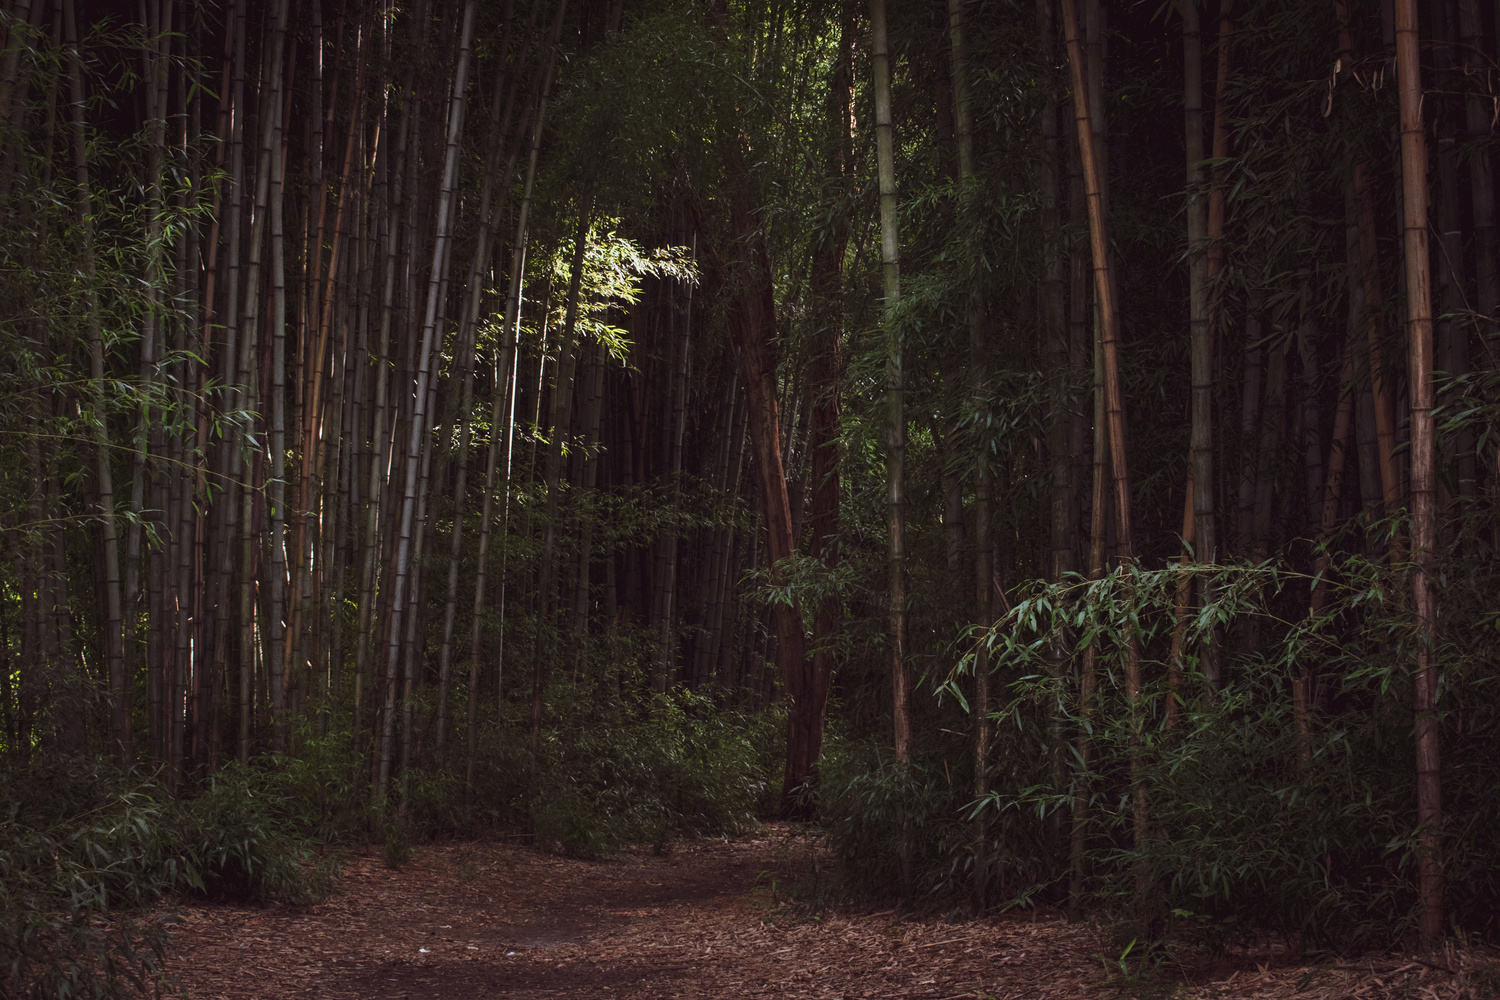 Bamboo Forest at Oconaluftee by Mark Guinn